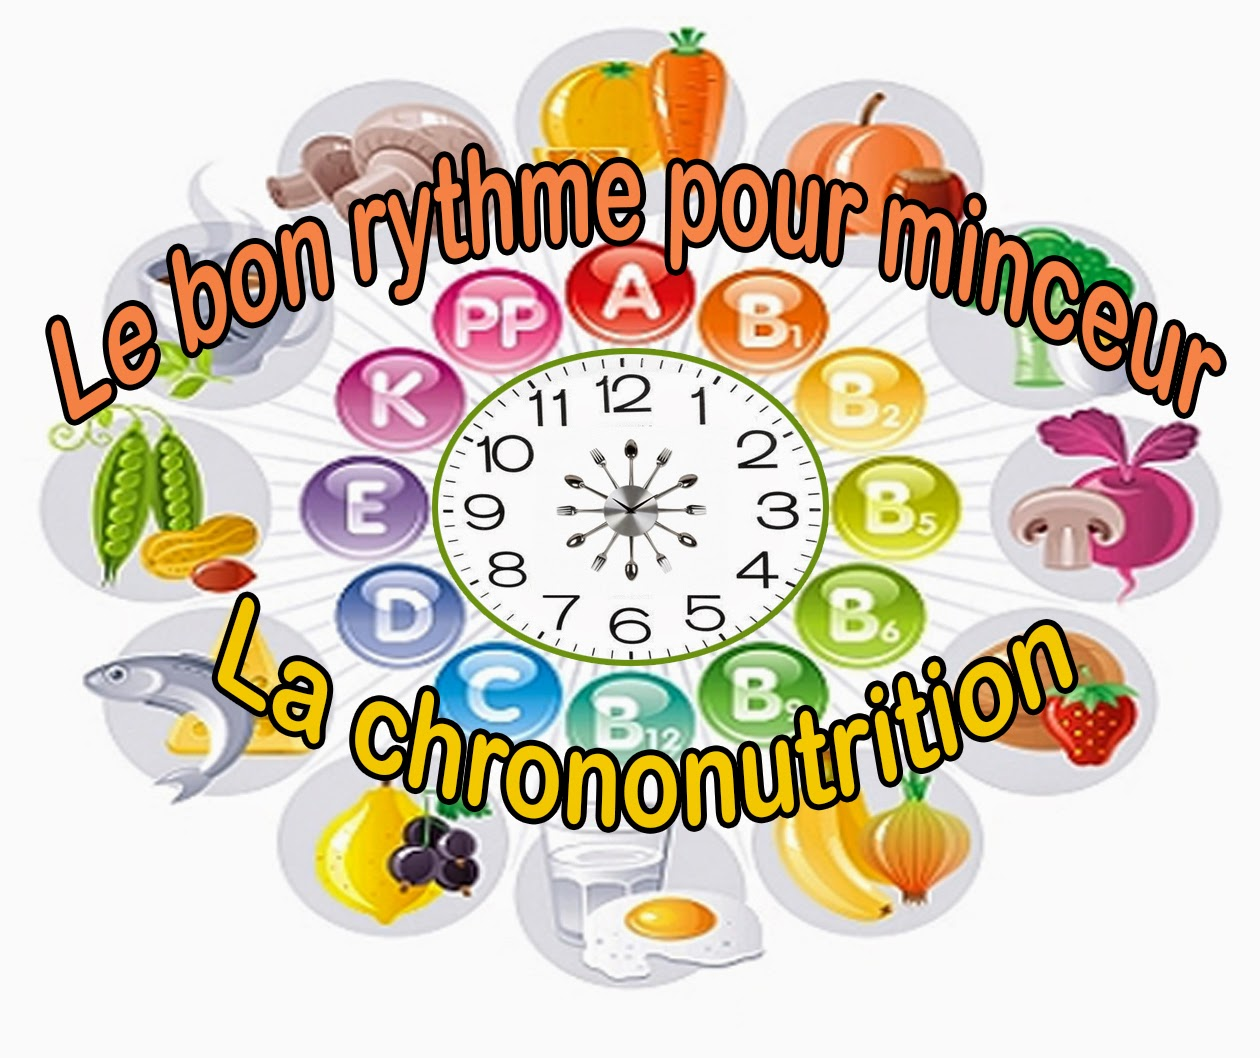 La chrononutrition